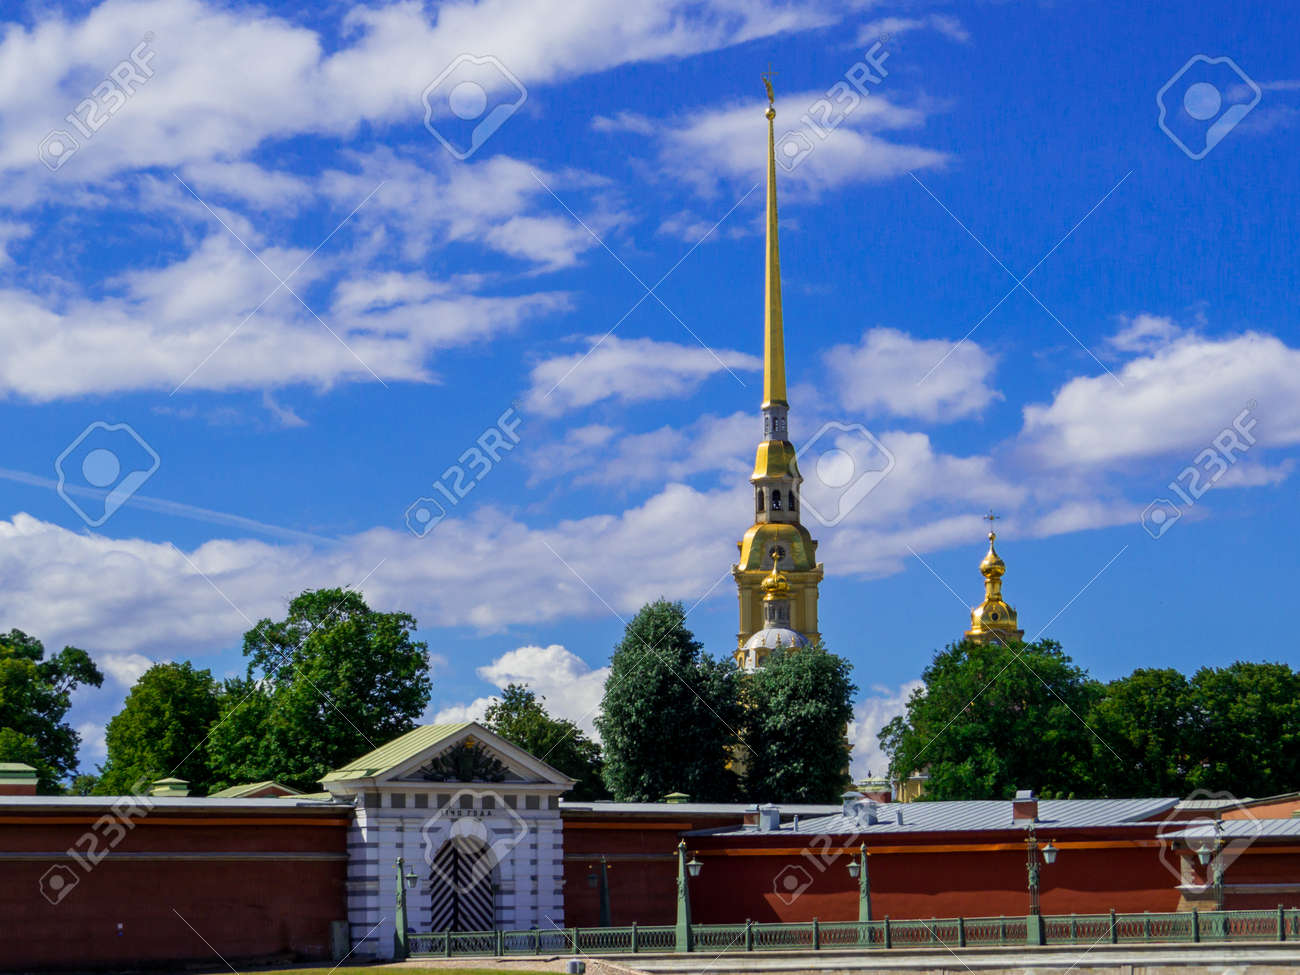 View of the Peter and Paul Fortress in St. Petersburg, Russia - 159692379